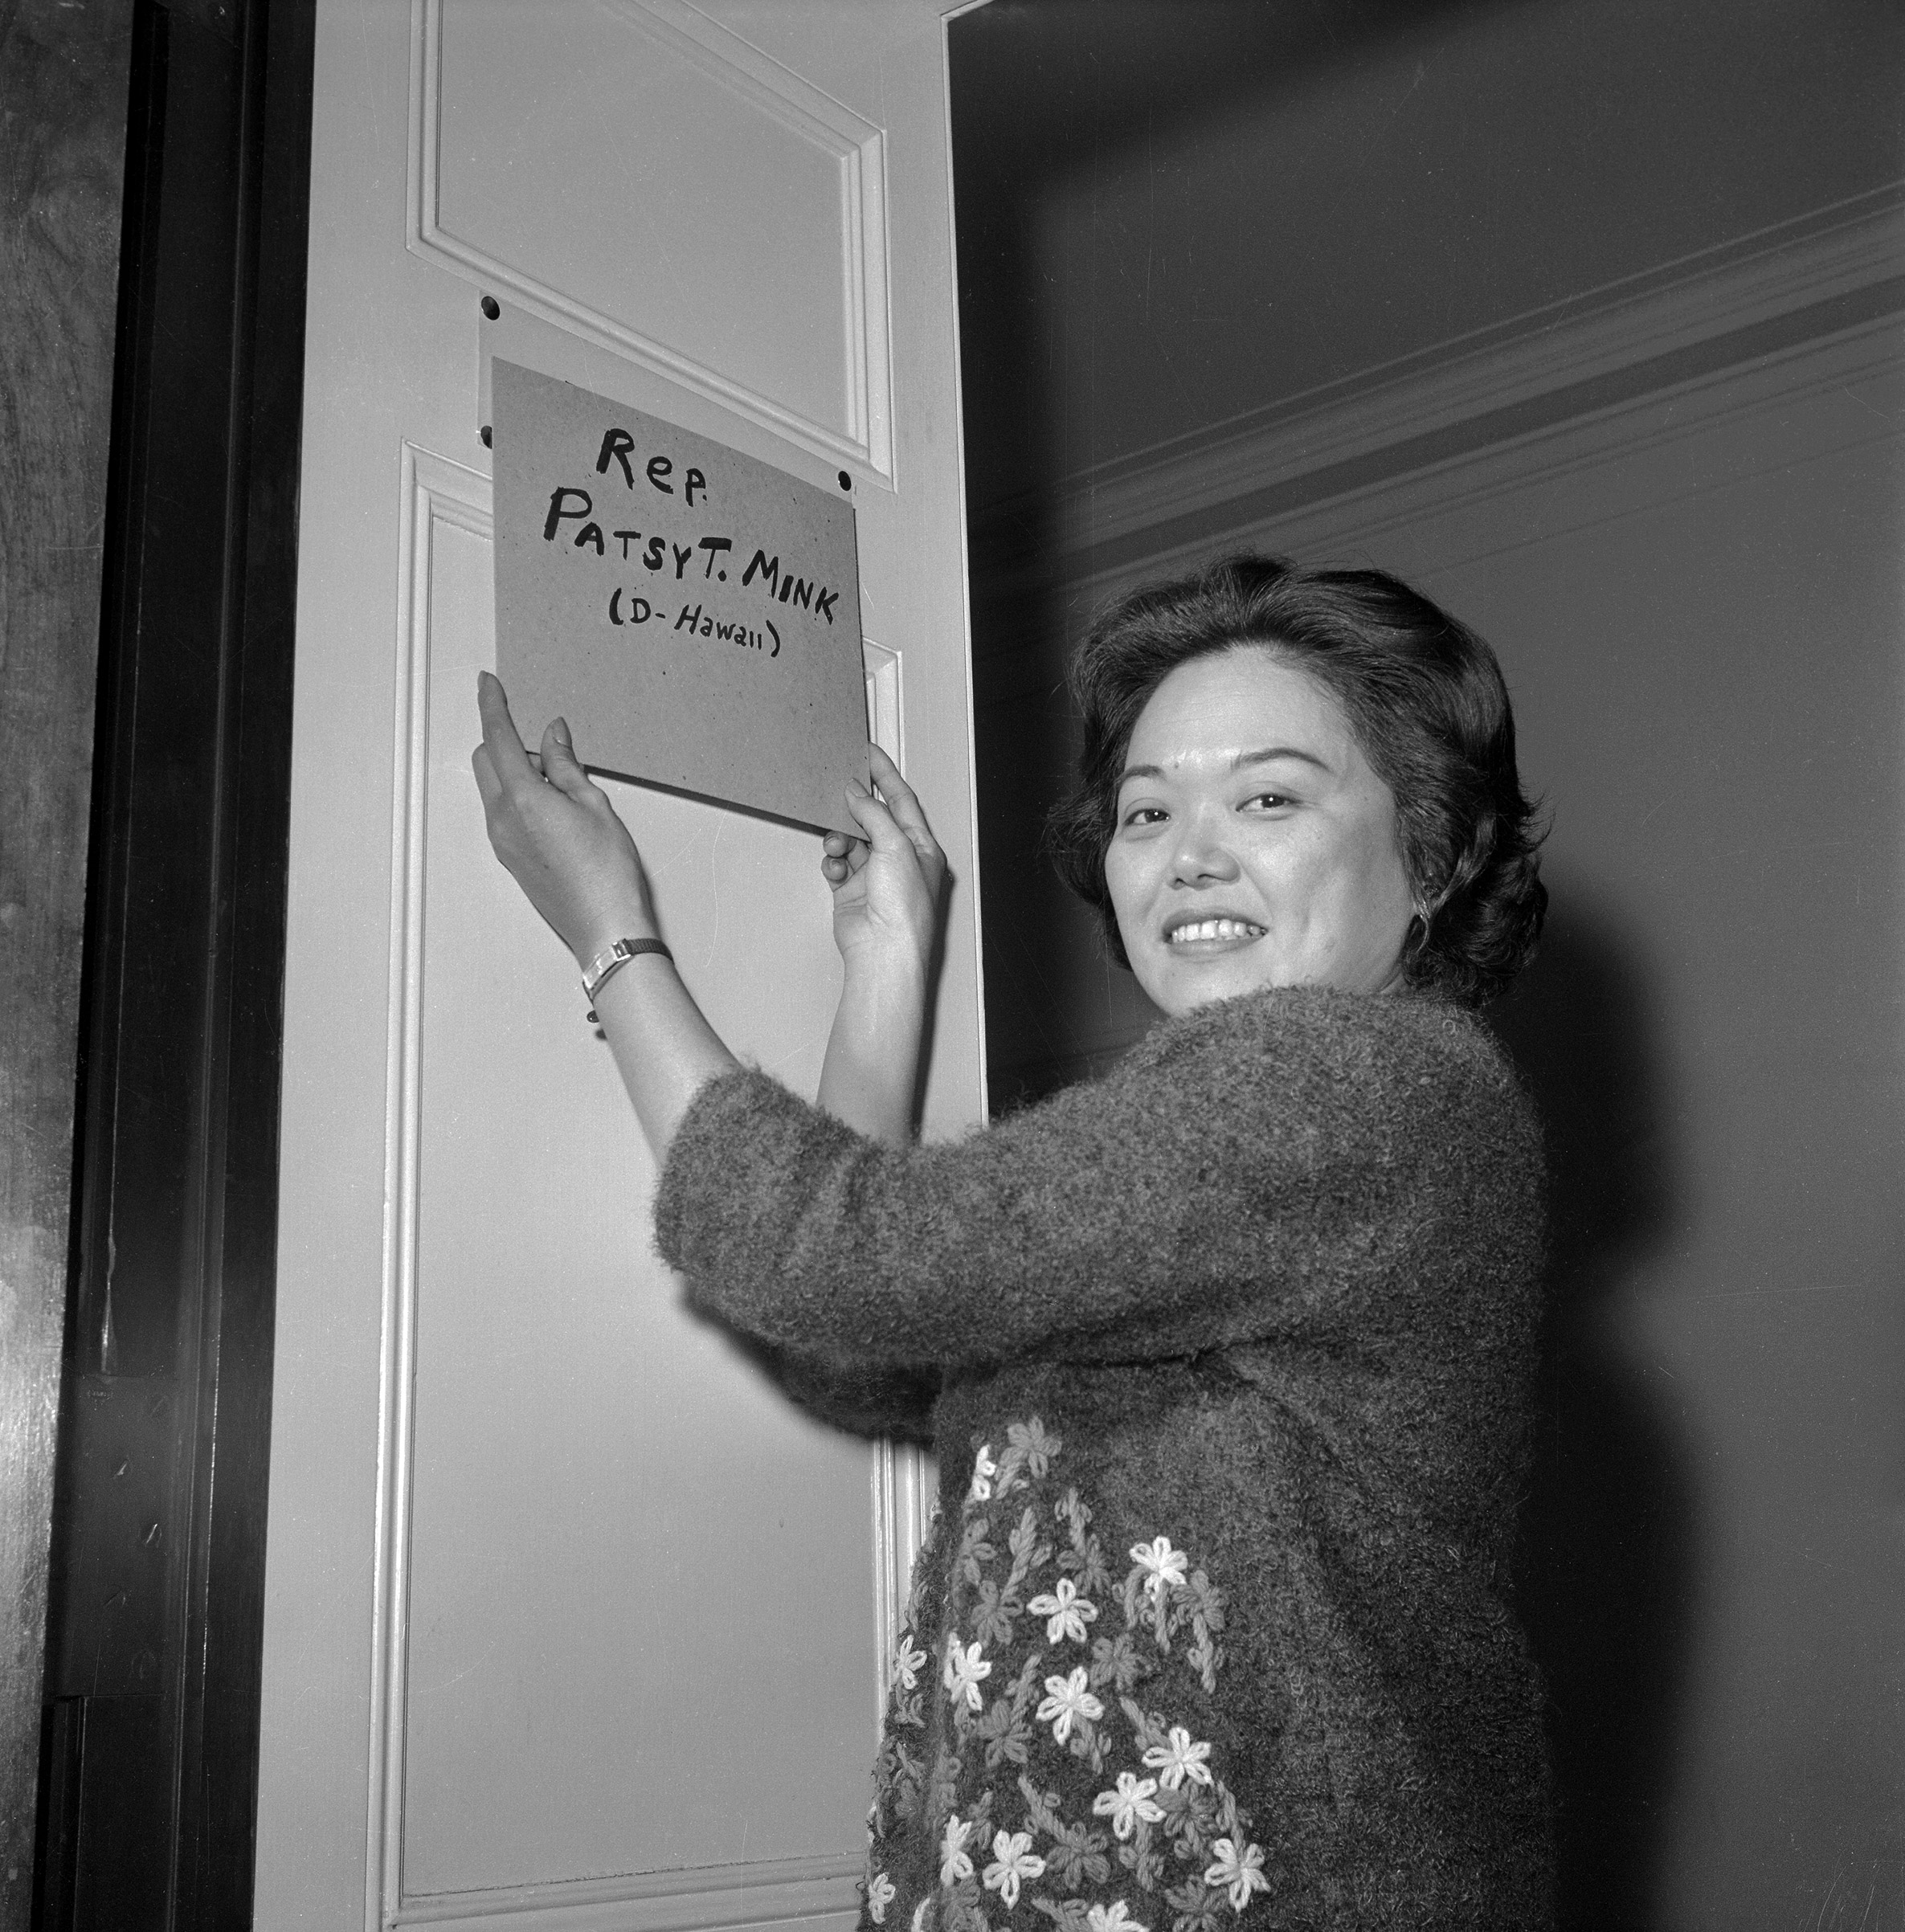 PATSY MINK became the first woman of color elected to Congress in 1964 (representing Hawaii).